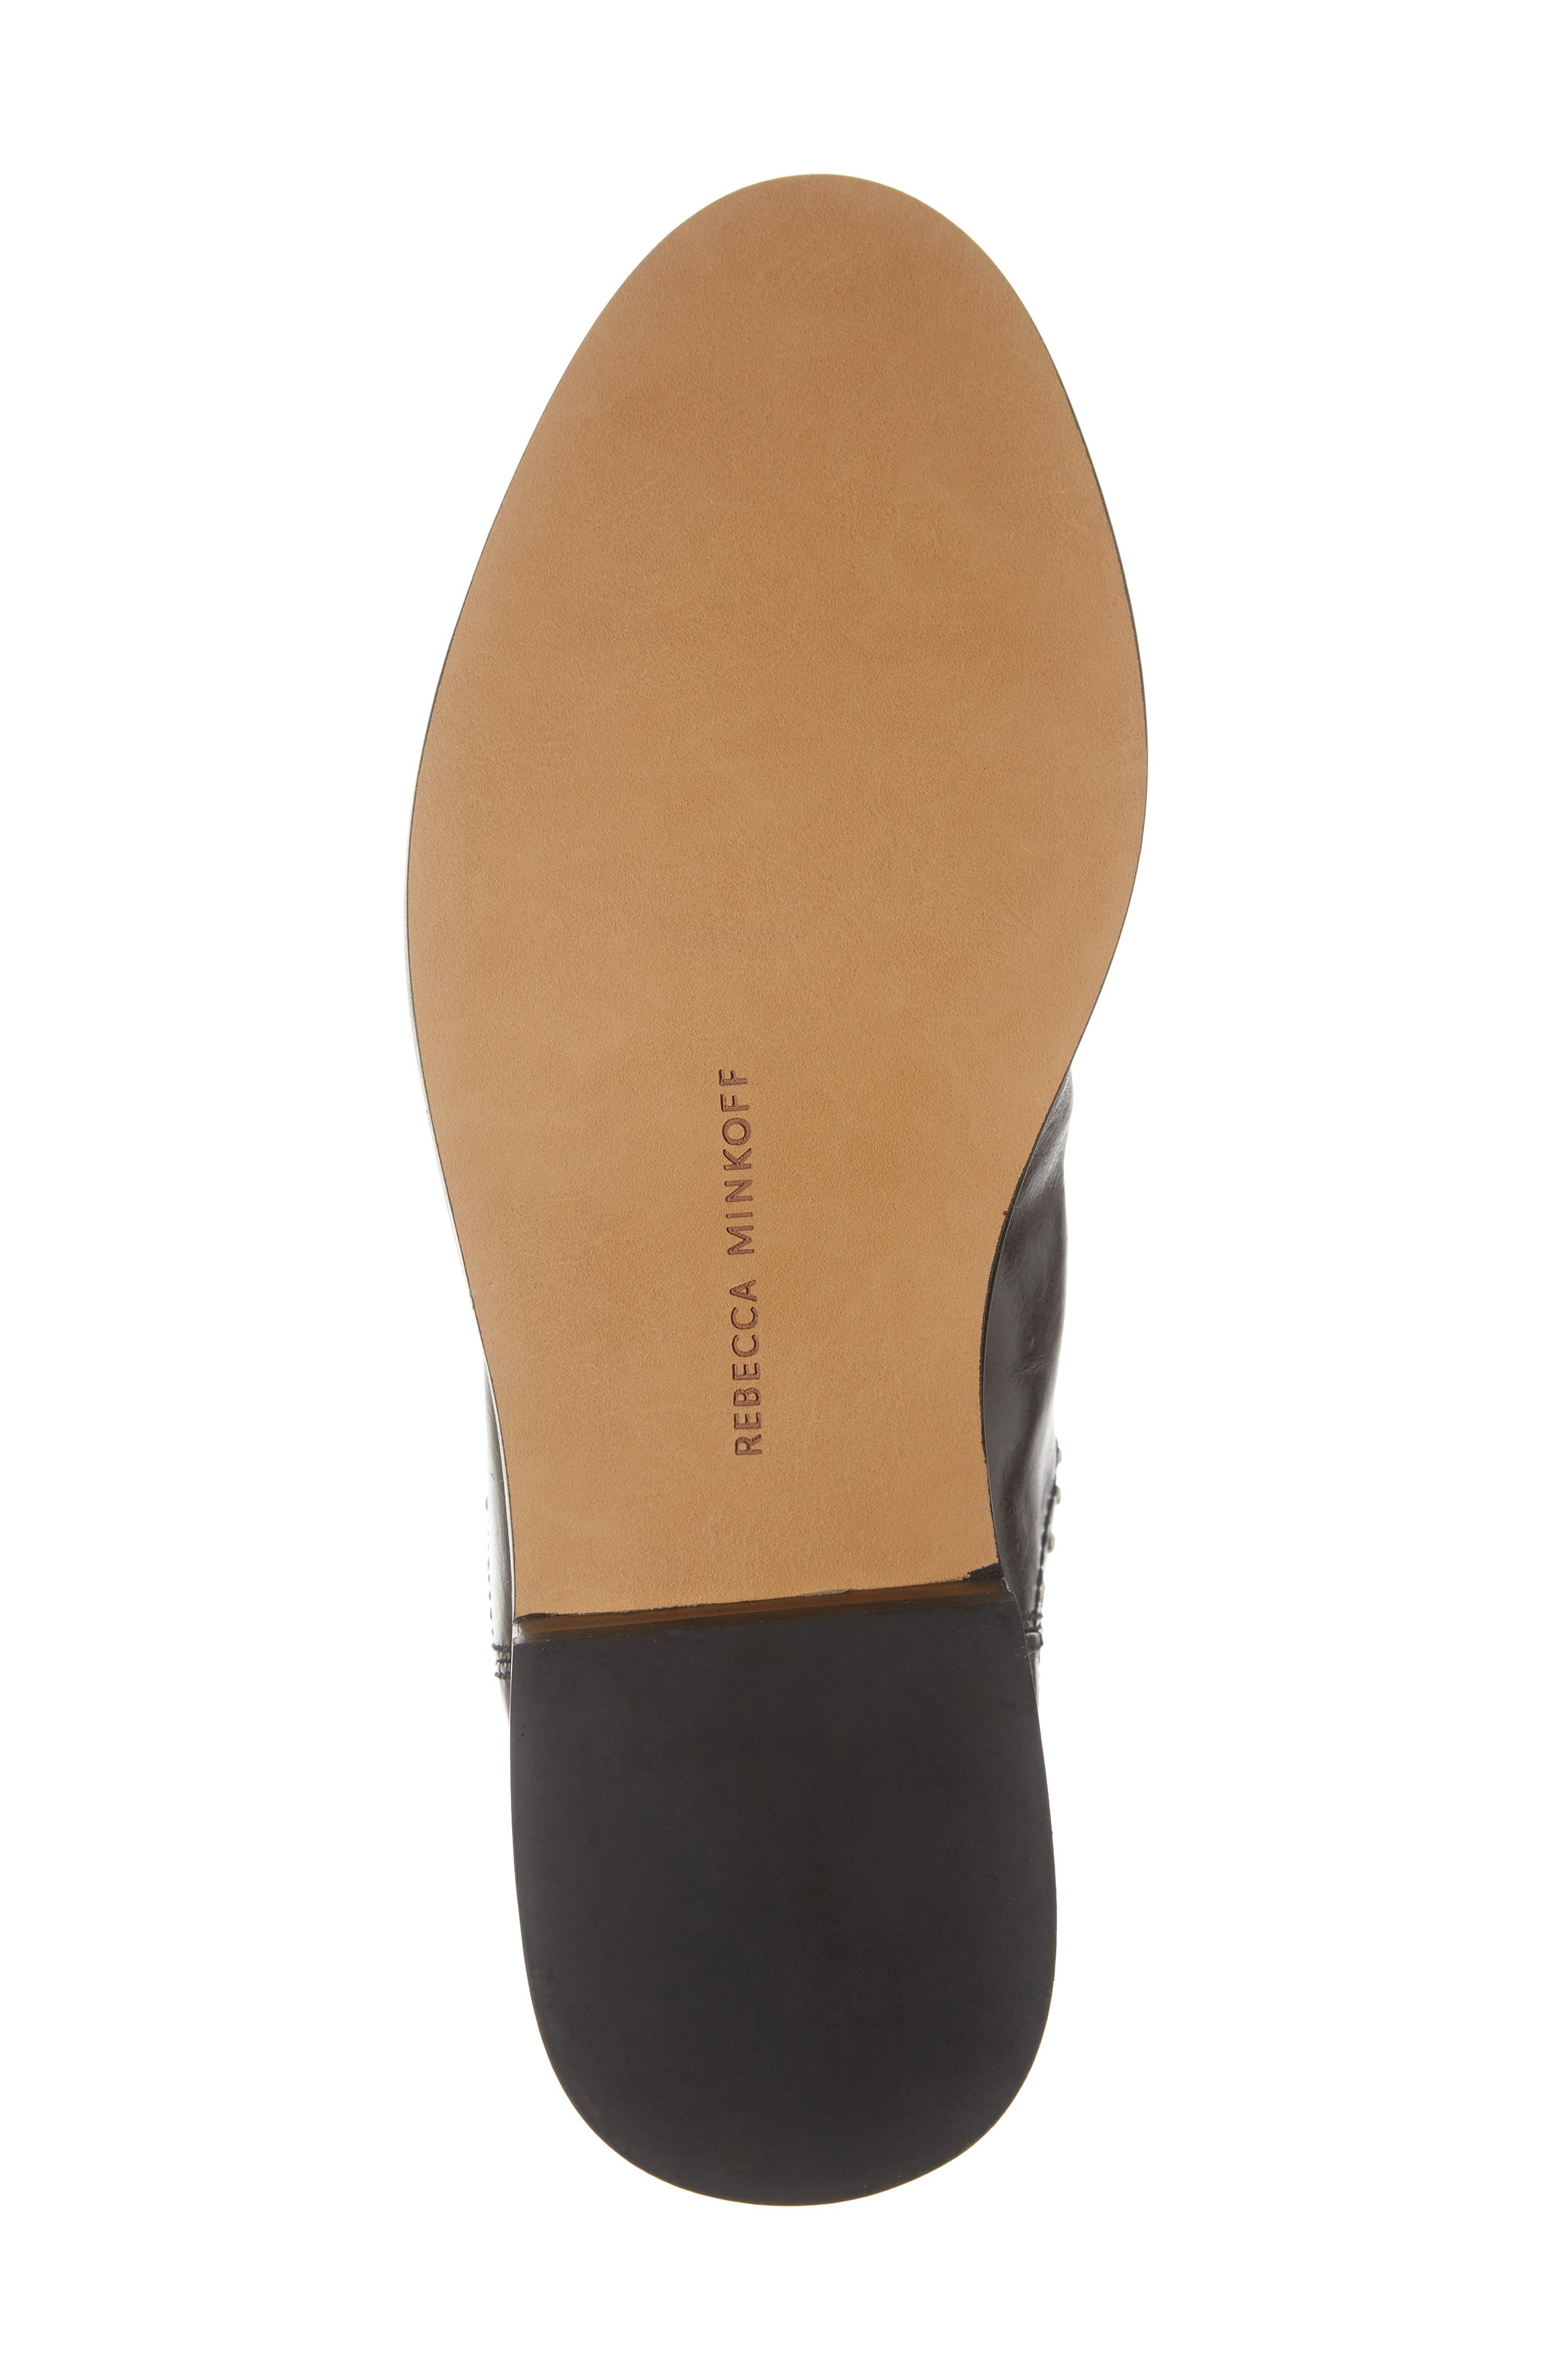 REBECCA MINKOFF, Sabeen Chelsea Bootie, Alternate thumbnail 6, color, BLACK LEATHER